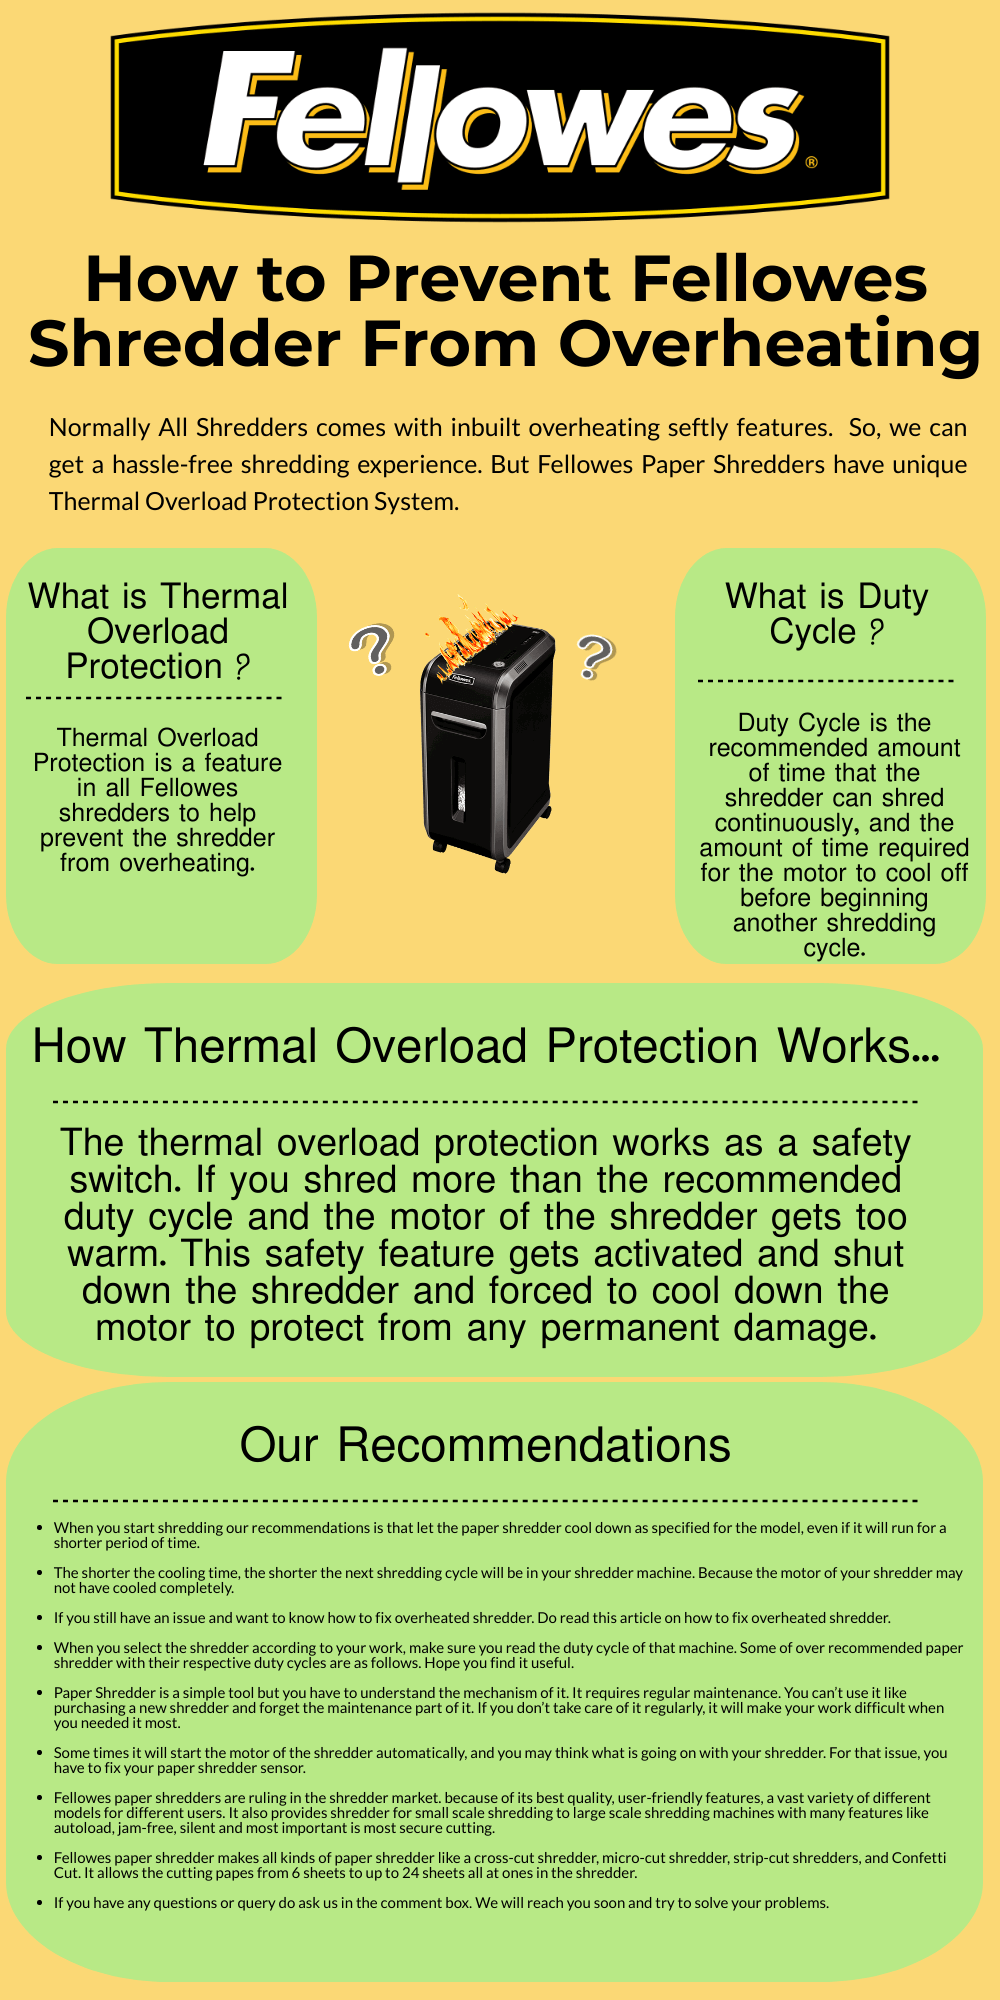 Fellowes Shredder Overheat - Thermal Overload Protection 2